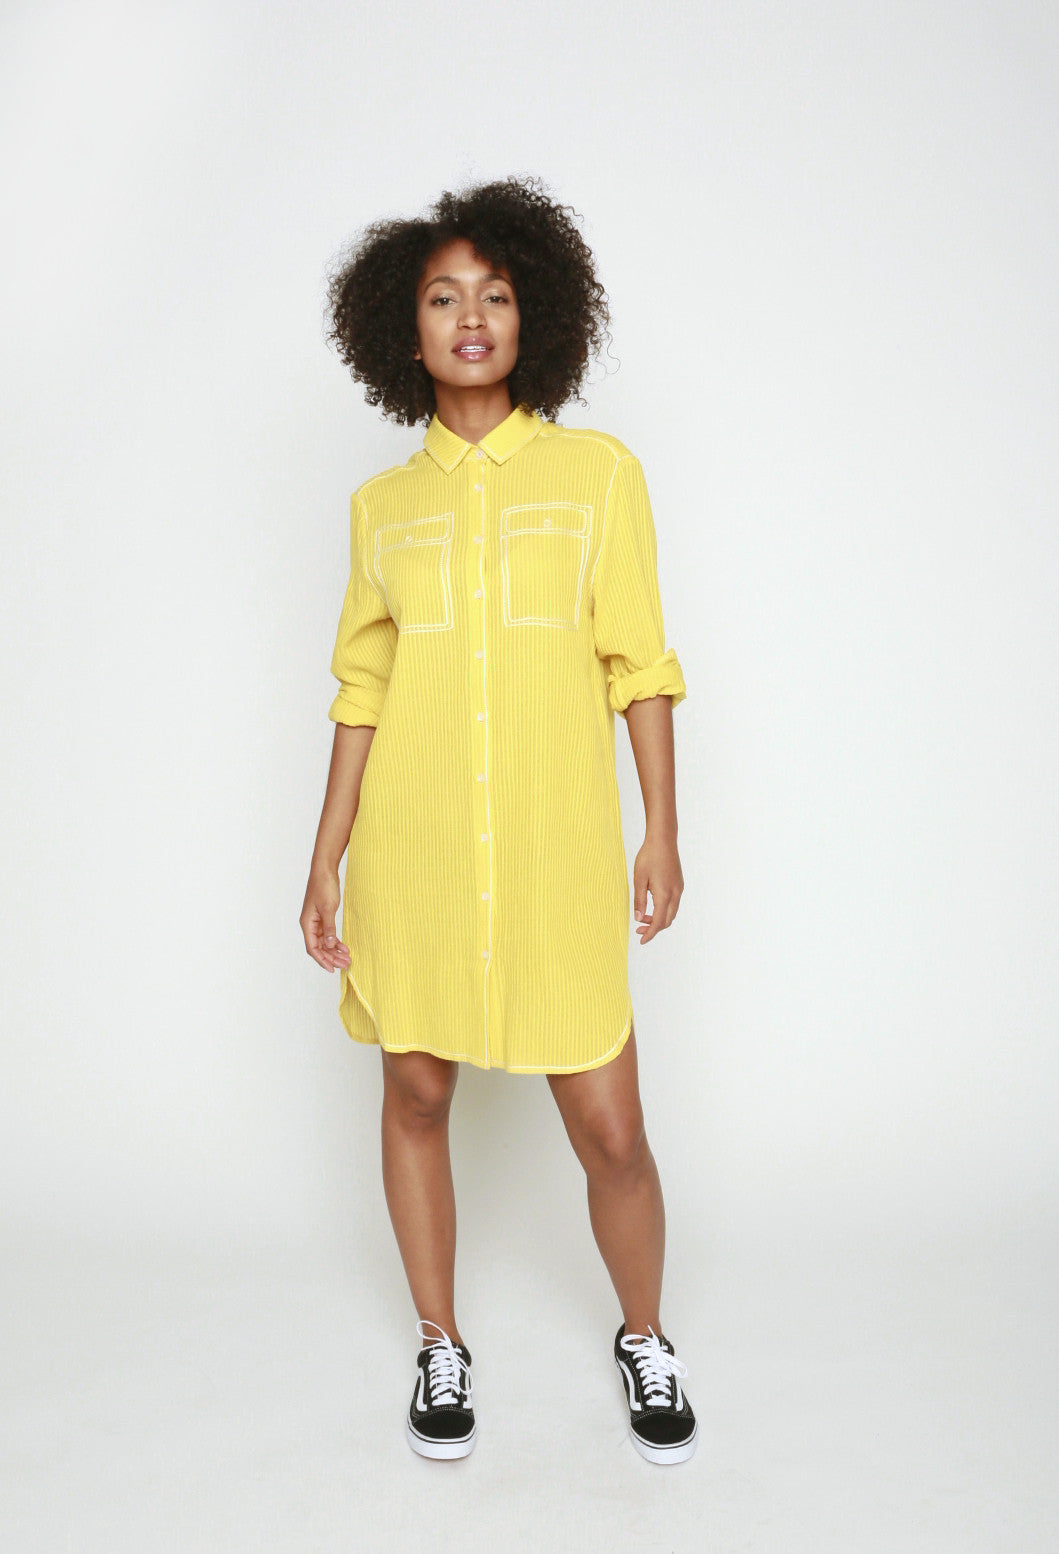 Pockets Embroidered Shirt Dress - 34°N 118°W